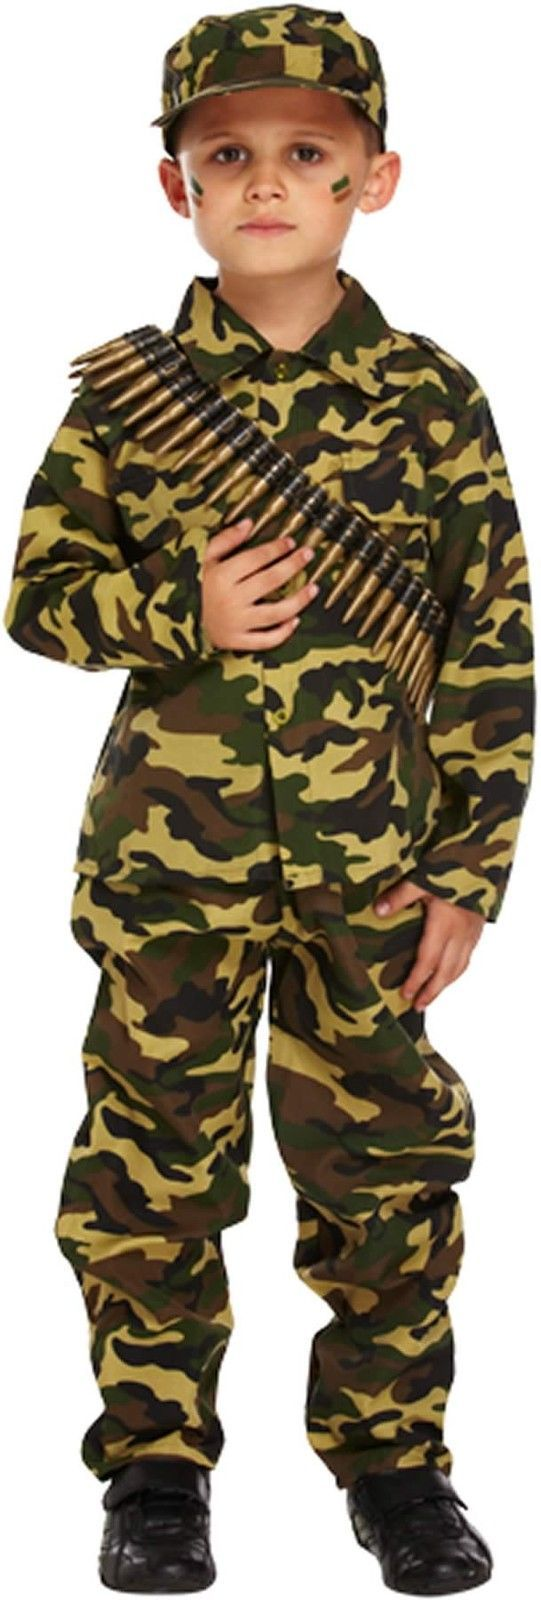 Boys Army Soldier Camouflage Fancy Dress Up Costume Children Book Week